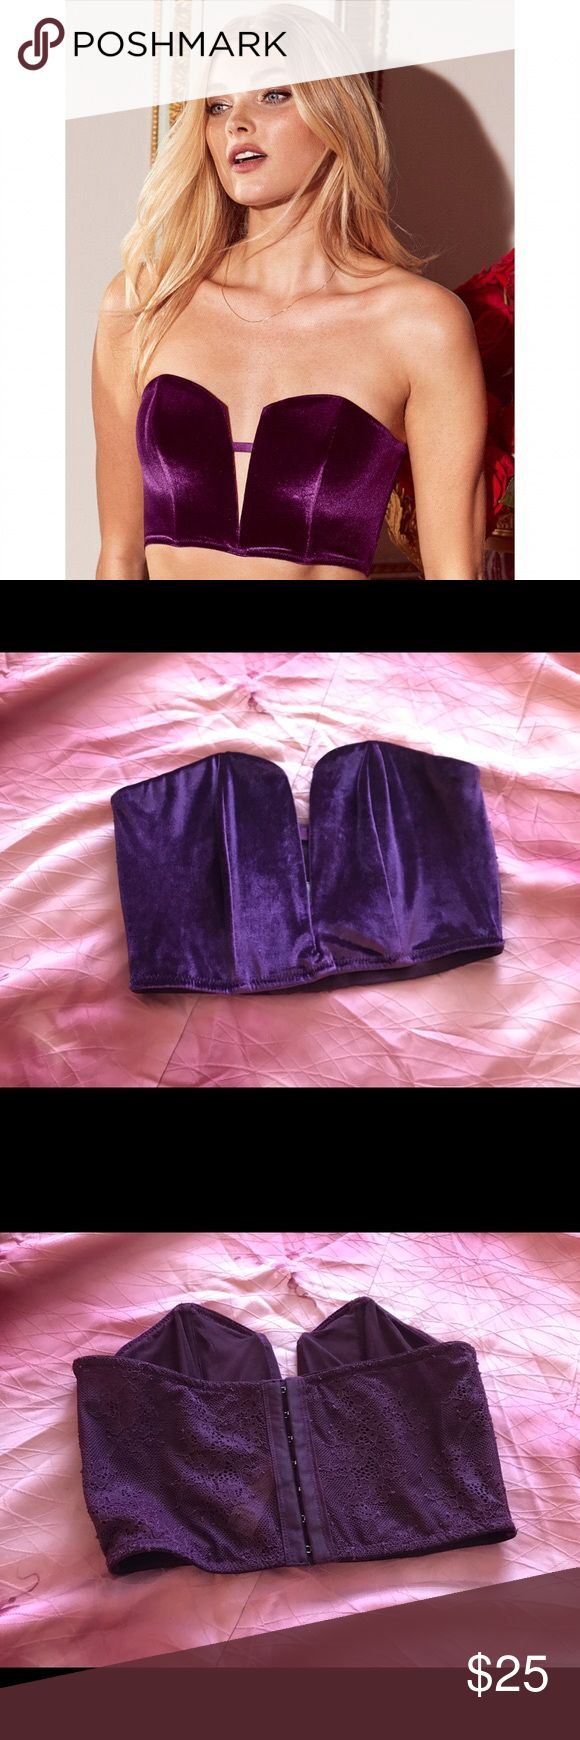 "Victoria's Secret Lace Velvet mini bustier super cute cropped bustier/ bralette, perfect with a high waist skirt for a going-out look :) has a lace back. plum / ""ruby wine"" color. fits 32-34 best Victoria's Secret Intimates & Sleepwear Bras"